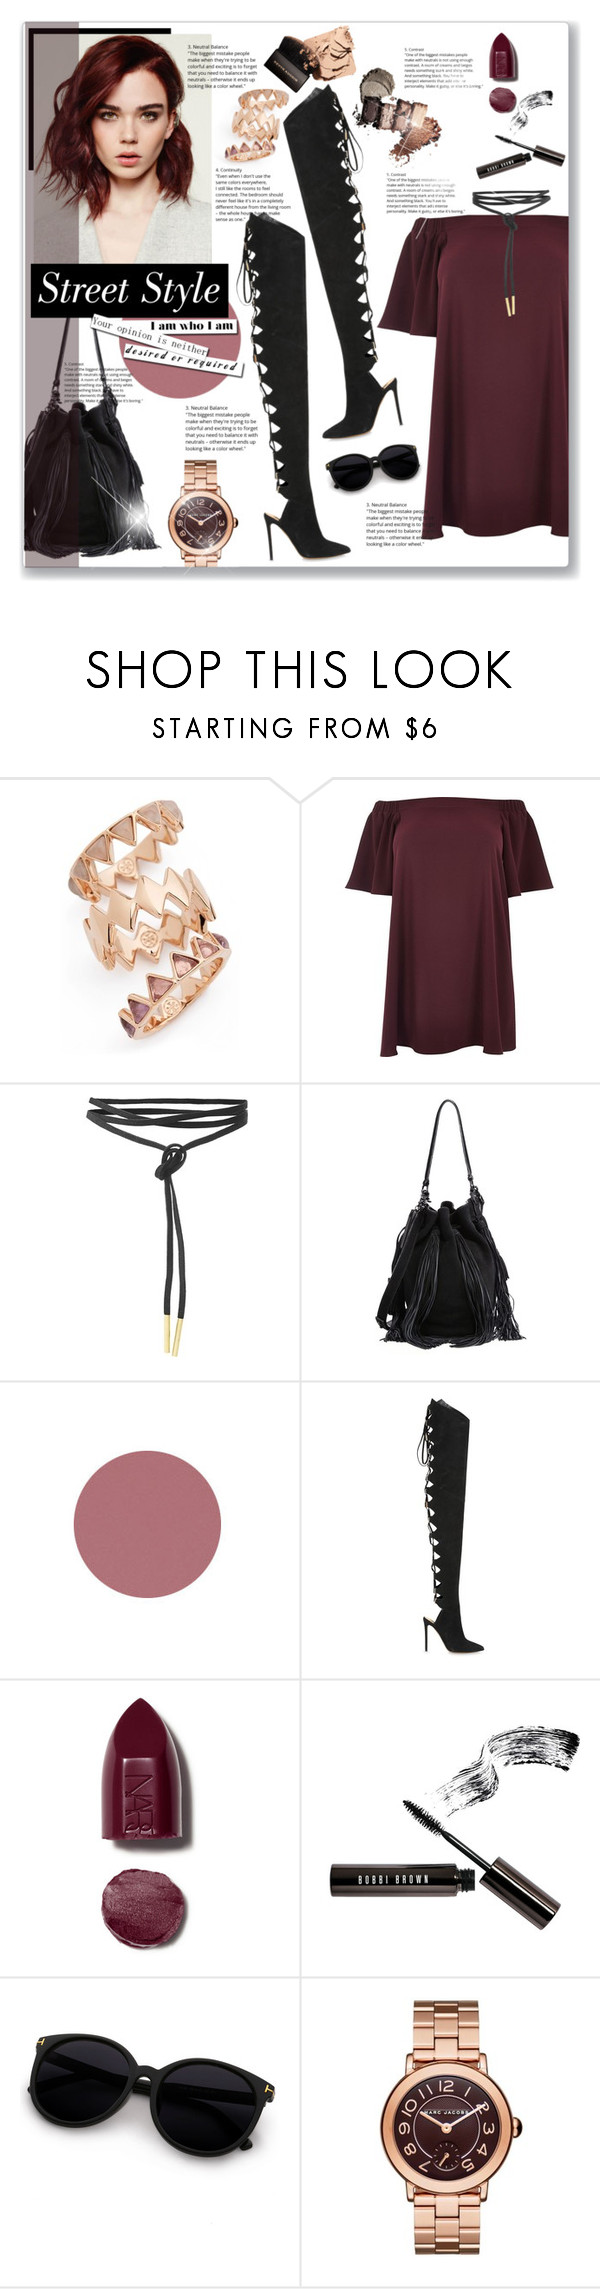 """""""Без названия #326"""" by editaeduardovna ❤ liked on Polyvore featuring Tory Burch, River Island, Loeffler Randall, Alexandre Vauthier, NARS Cosmetics, Bobbi Brown Cosmetics, Marc Jacobs, Boots, suede and redhair"""